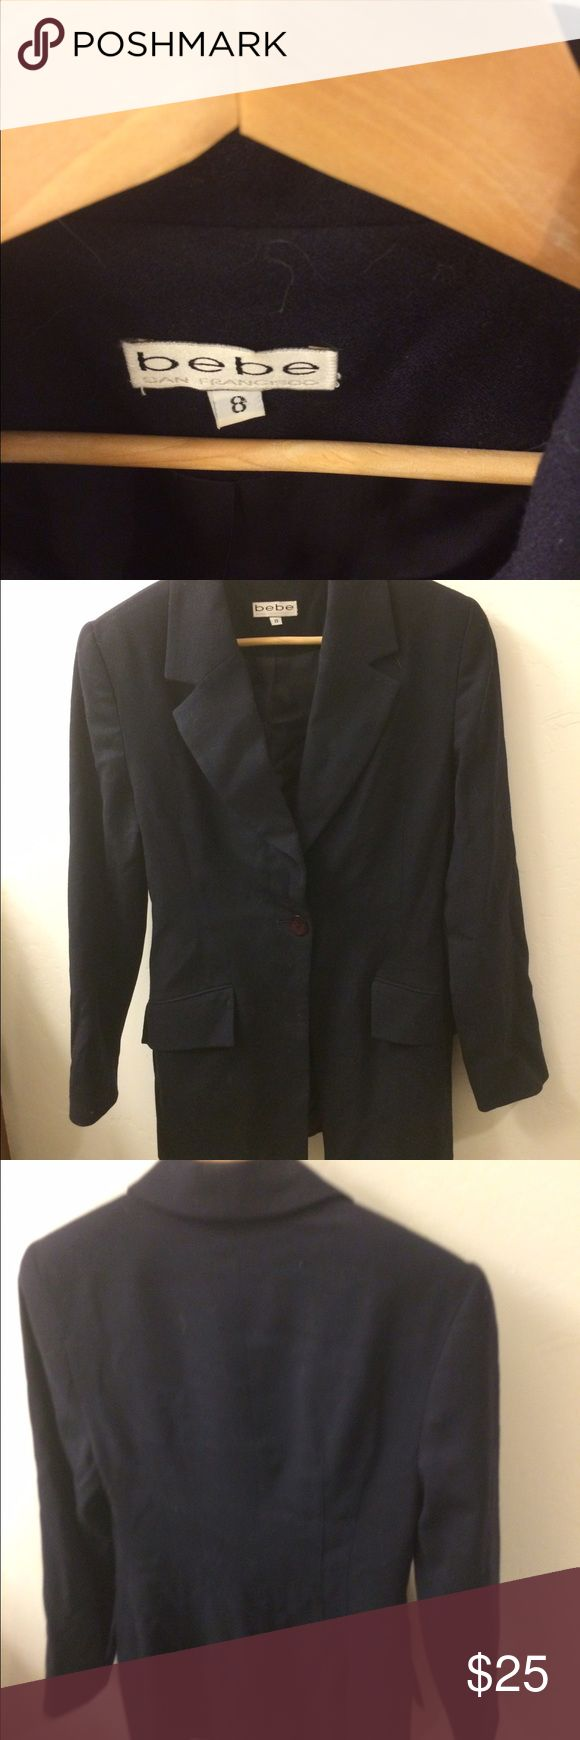 Bebe jacket Dtr worn once for S&D Competition. Very gently used jacket. Daughter worn in speech and debate competition once. BEBE Jackets & Coats Blazers